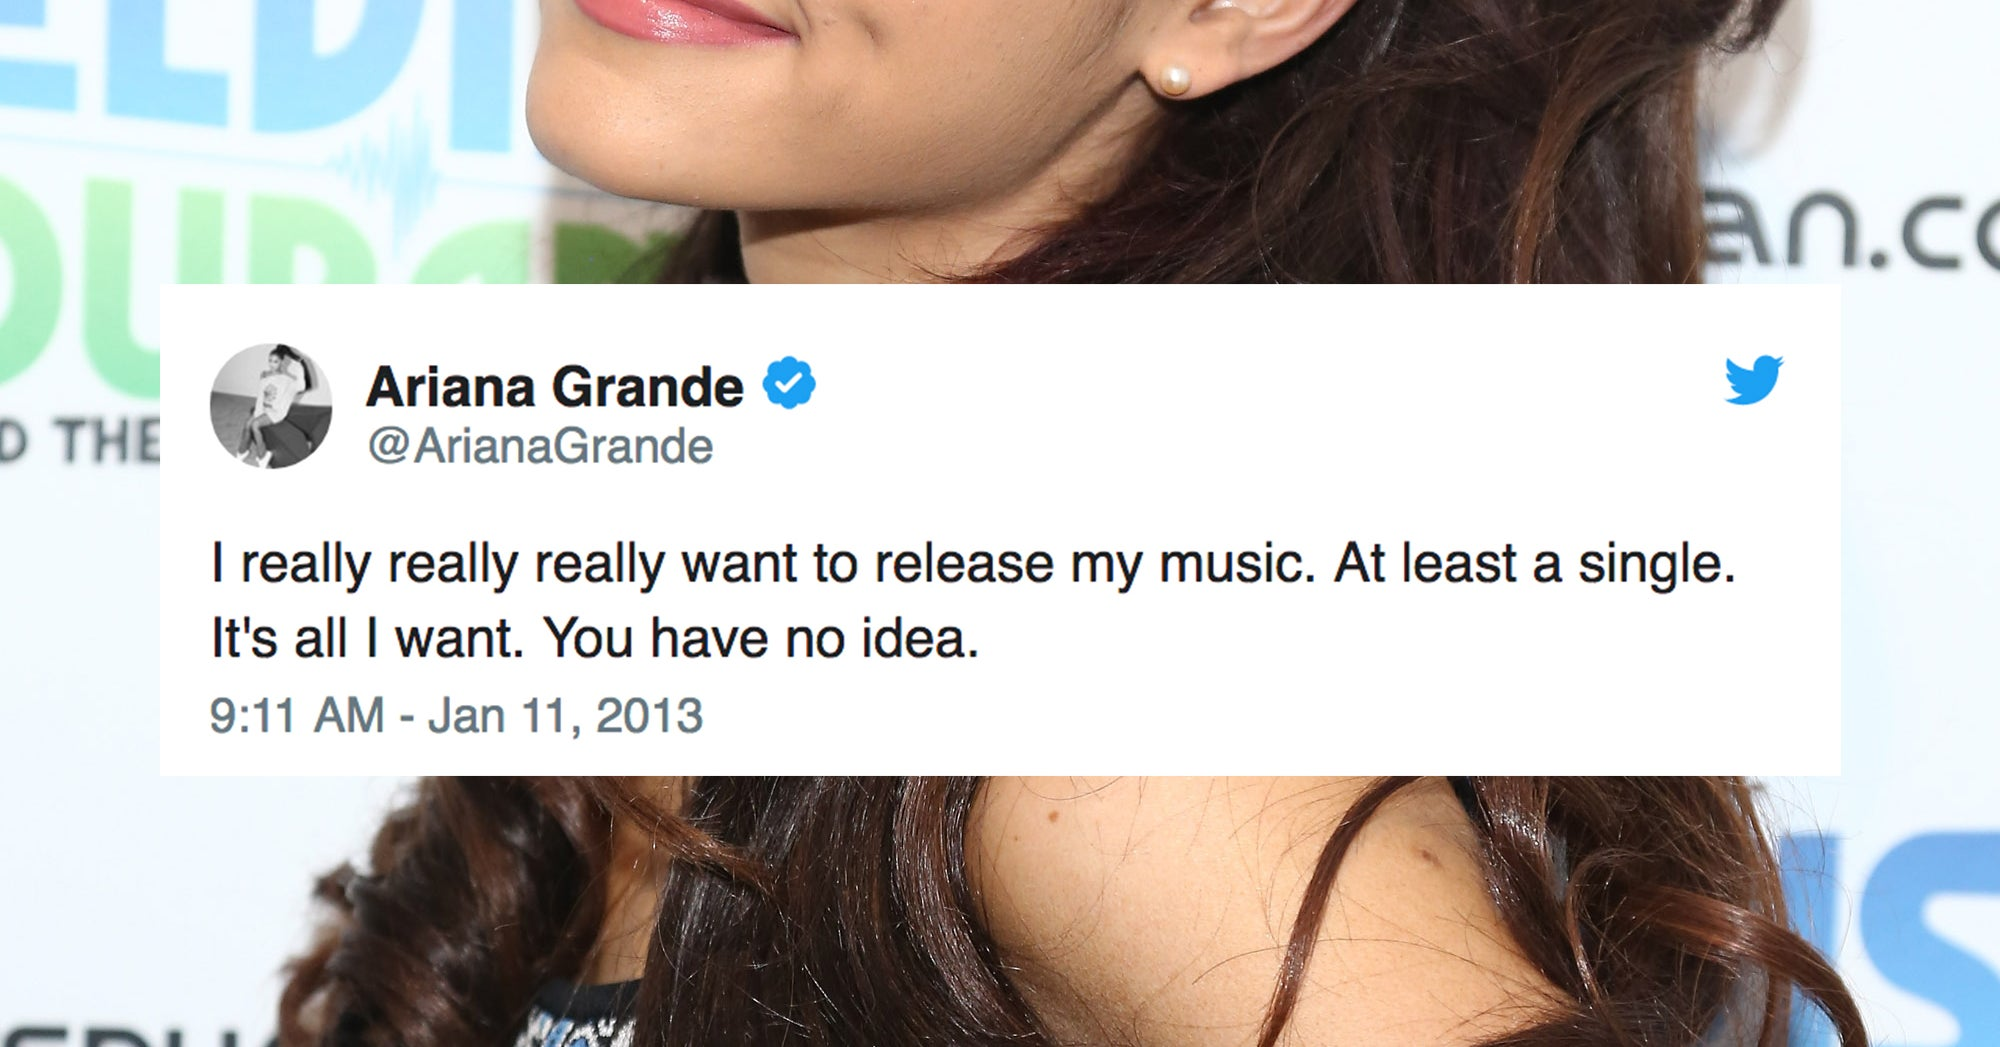 19 Celebrity Tweets That Prove January 2013 Was A Much, Much Different Time